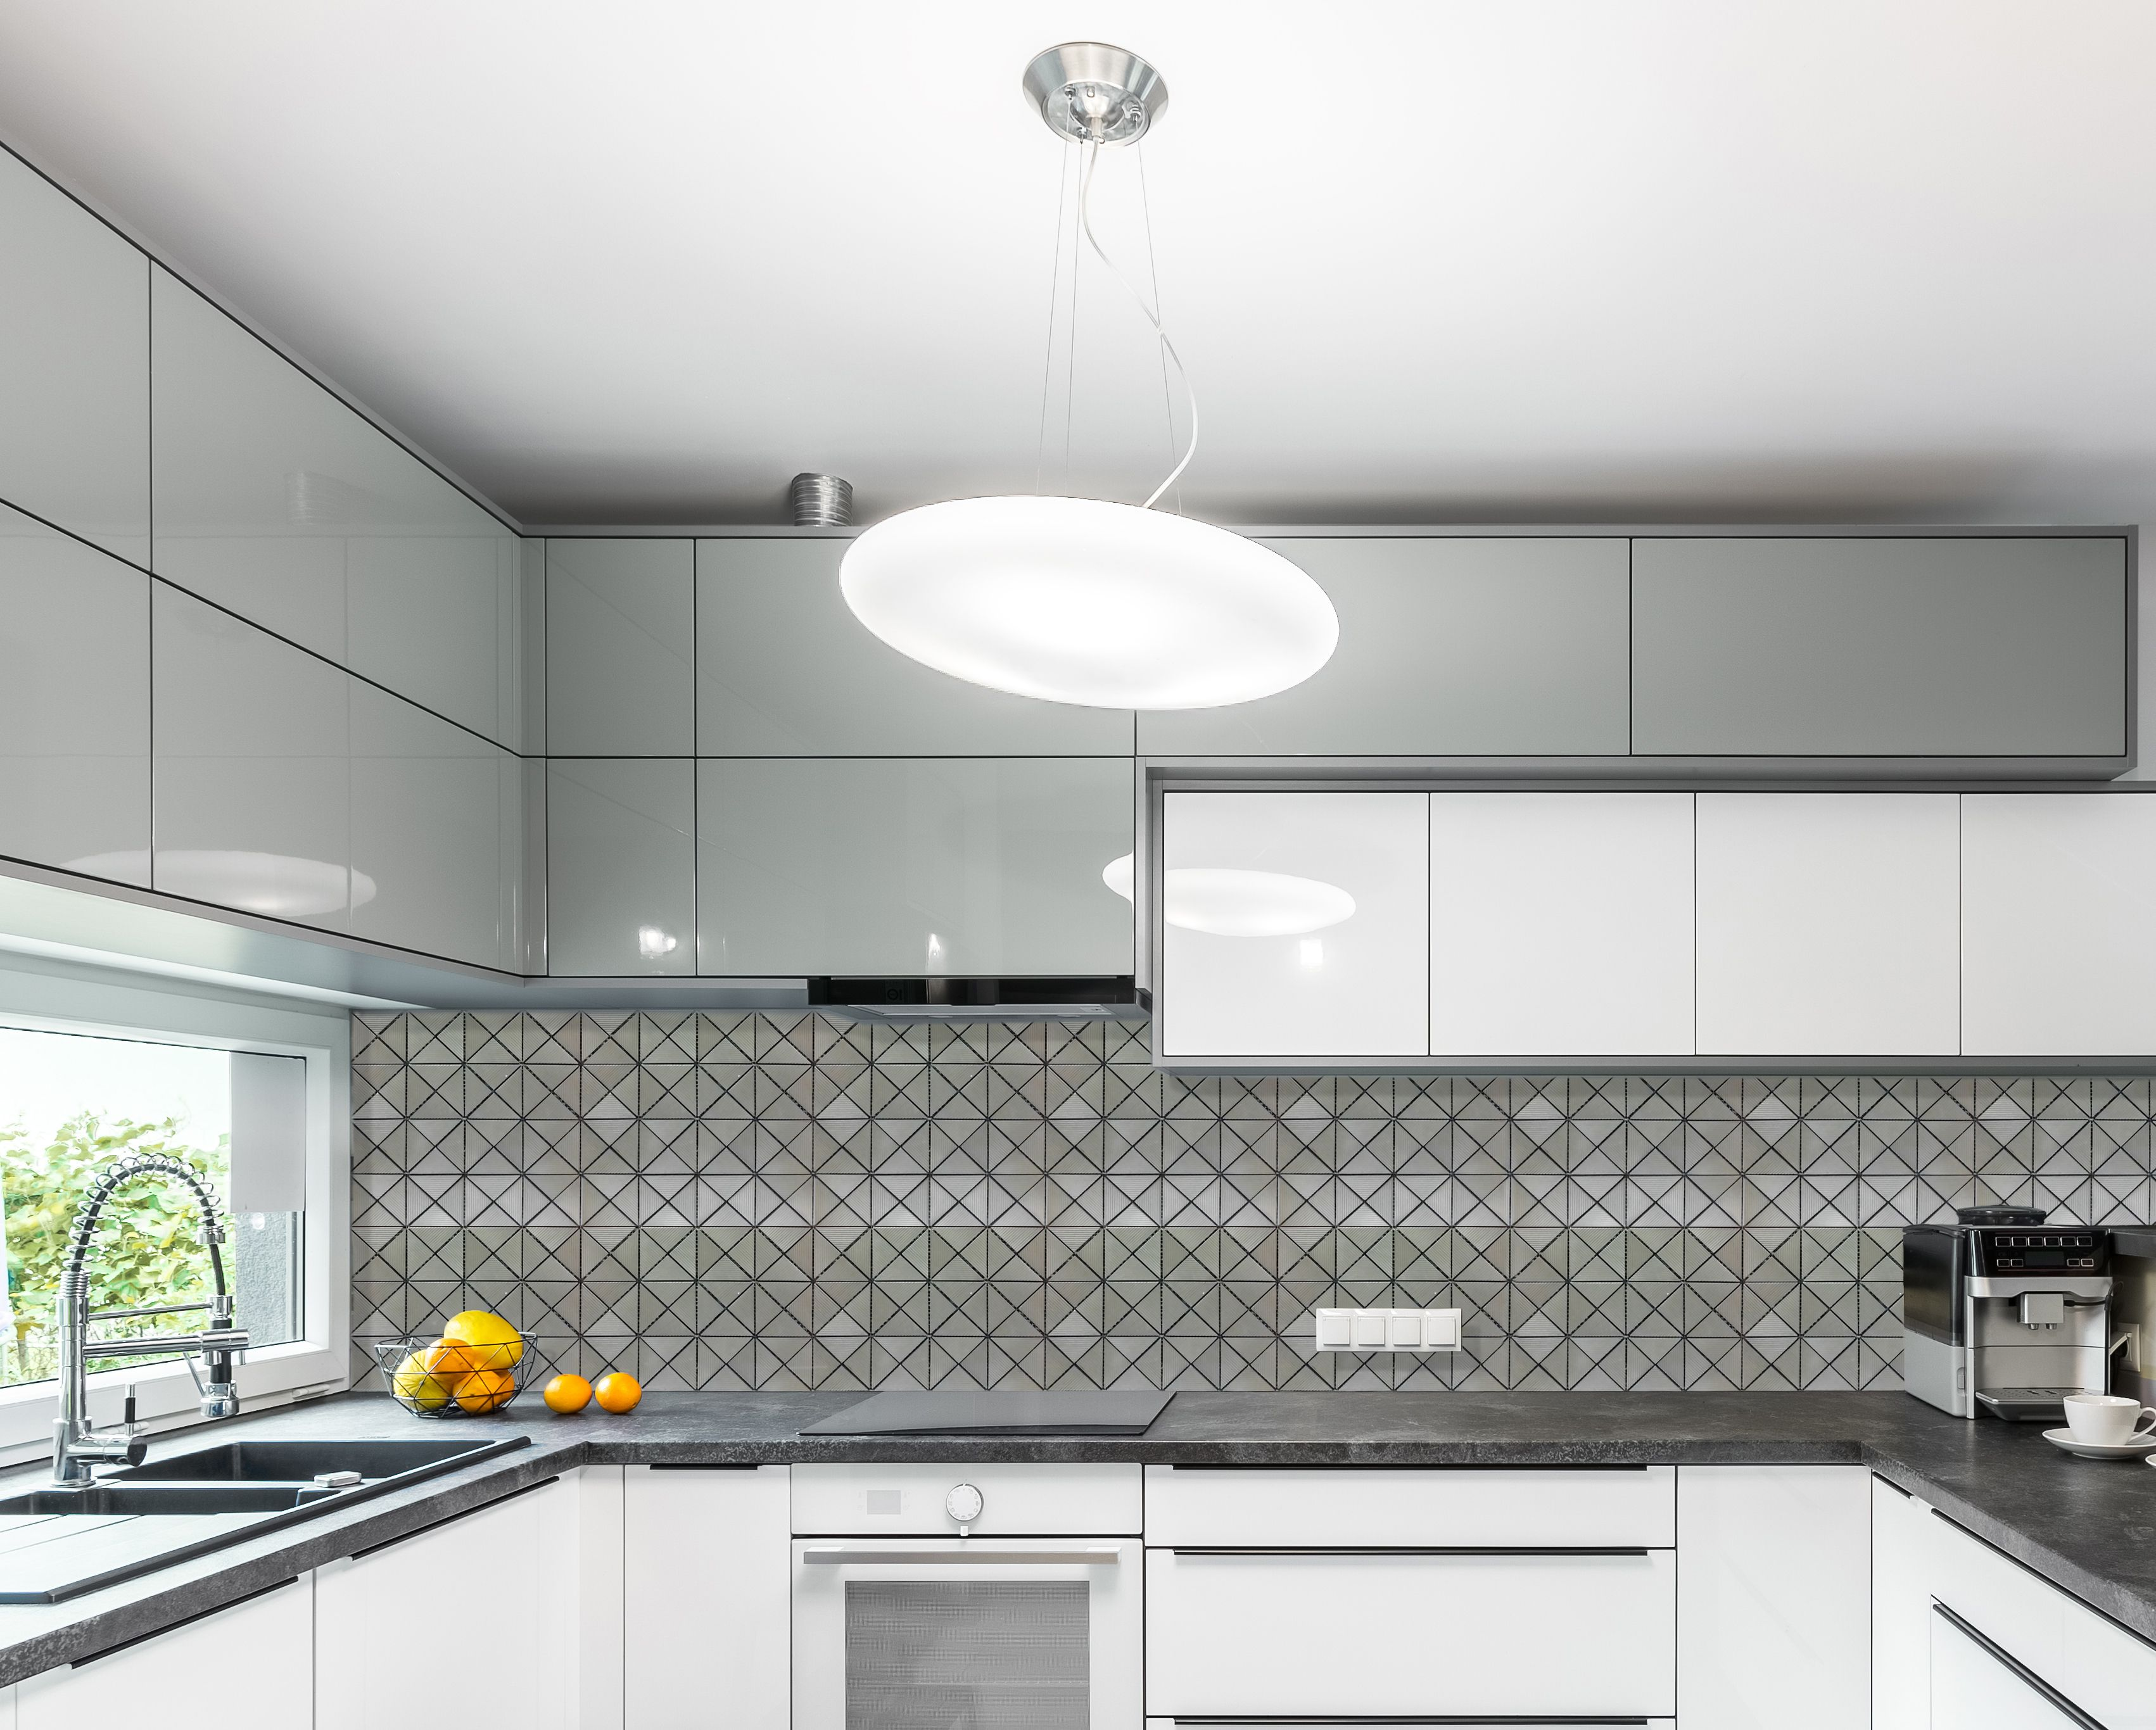 Brushed Nickel Tile Prisma from our collection is used for